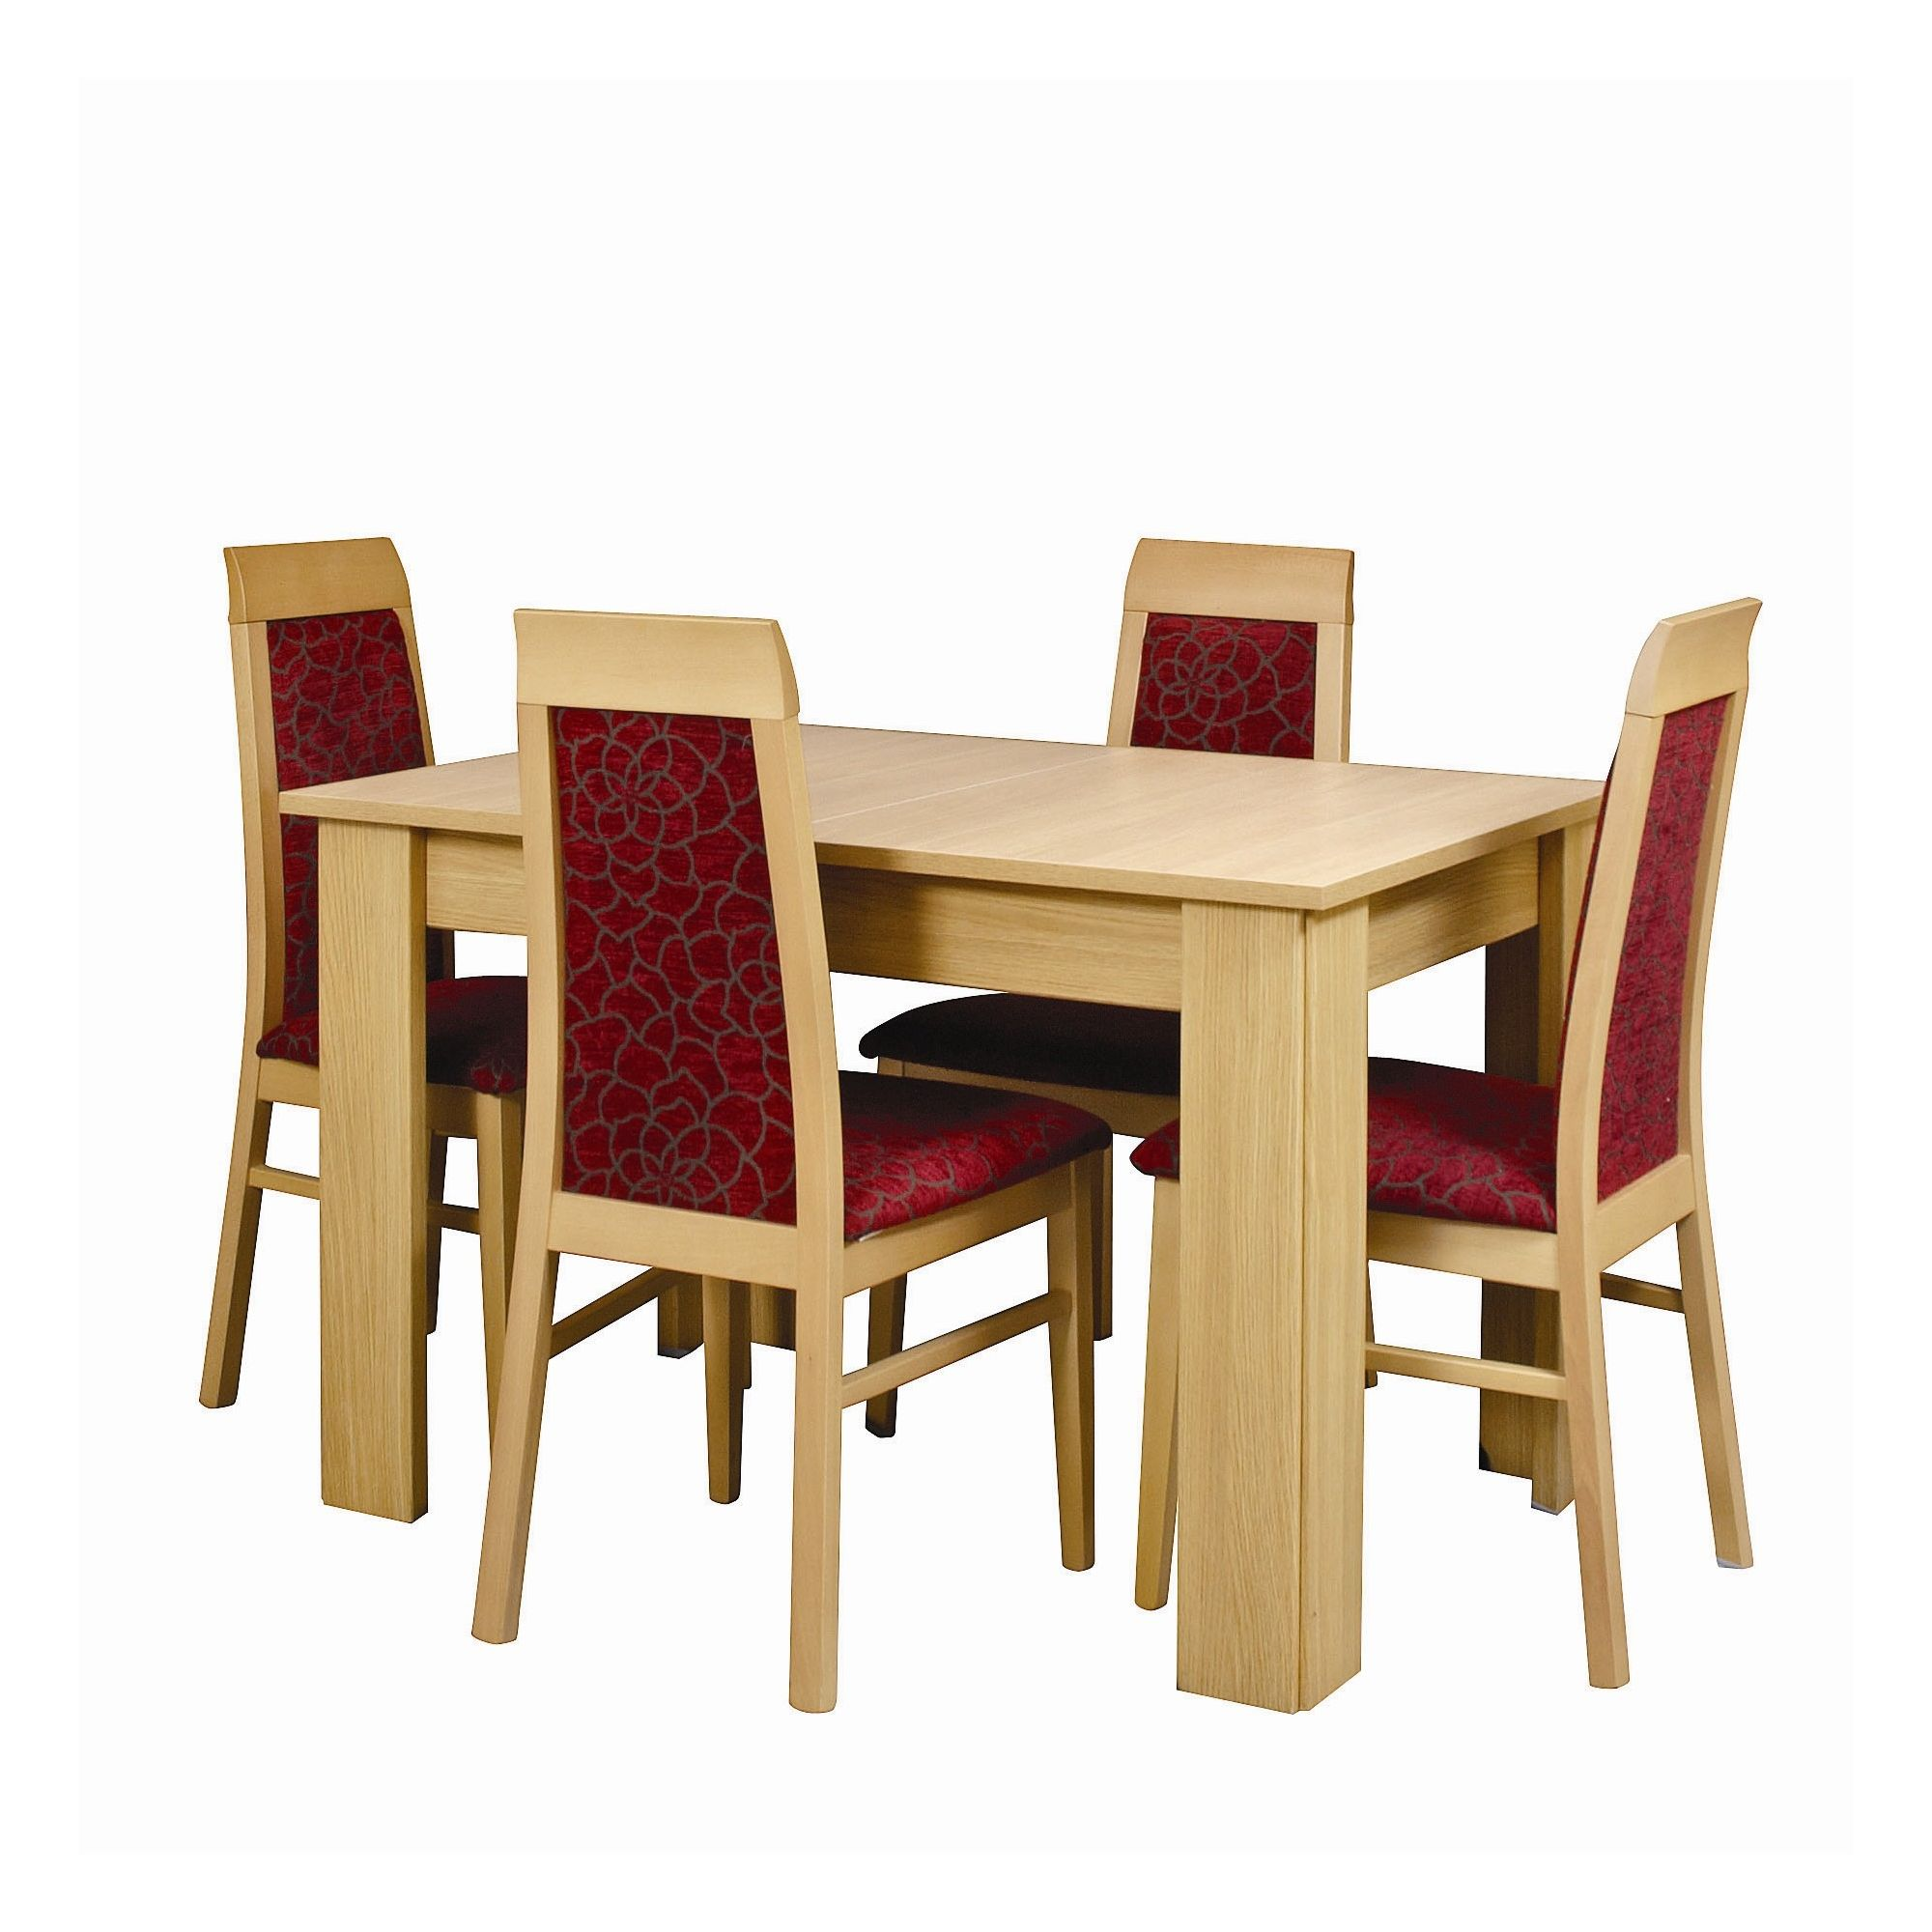 Caxton Huxley 4 Leg Compact Extending Dining Table with 6 Chairs in Light Oak at Tesco Direct